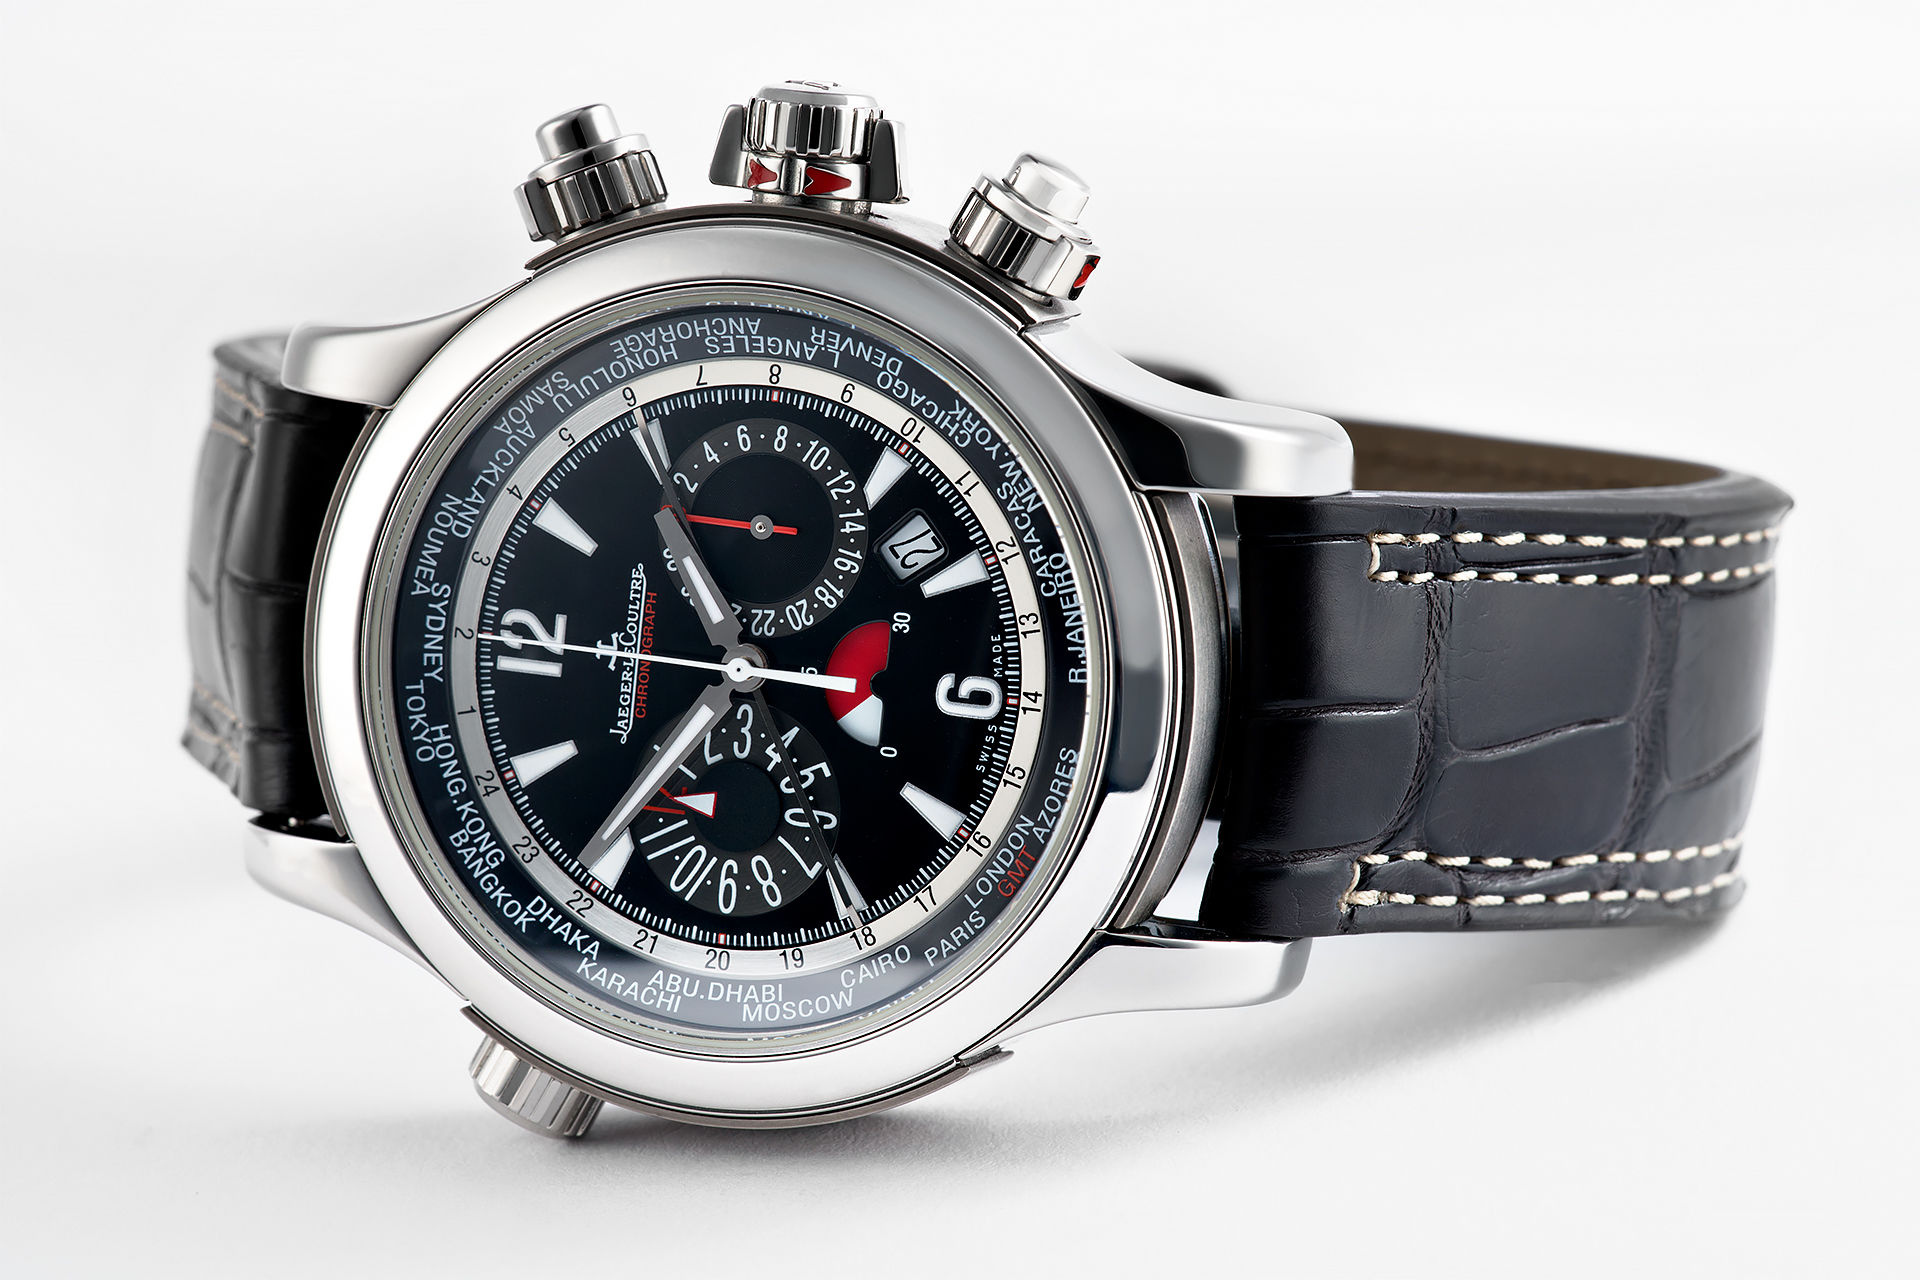 Jaeger-leCoultre Master Compressor Watches | ref 150 8 22